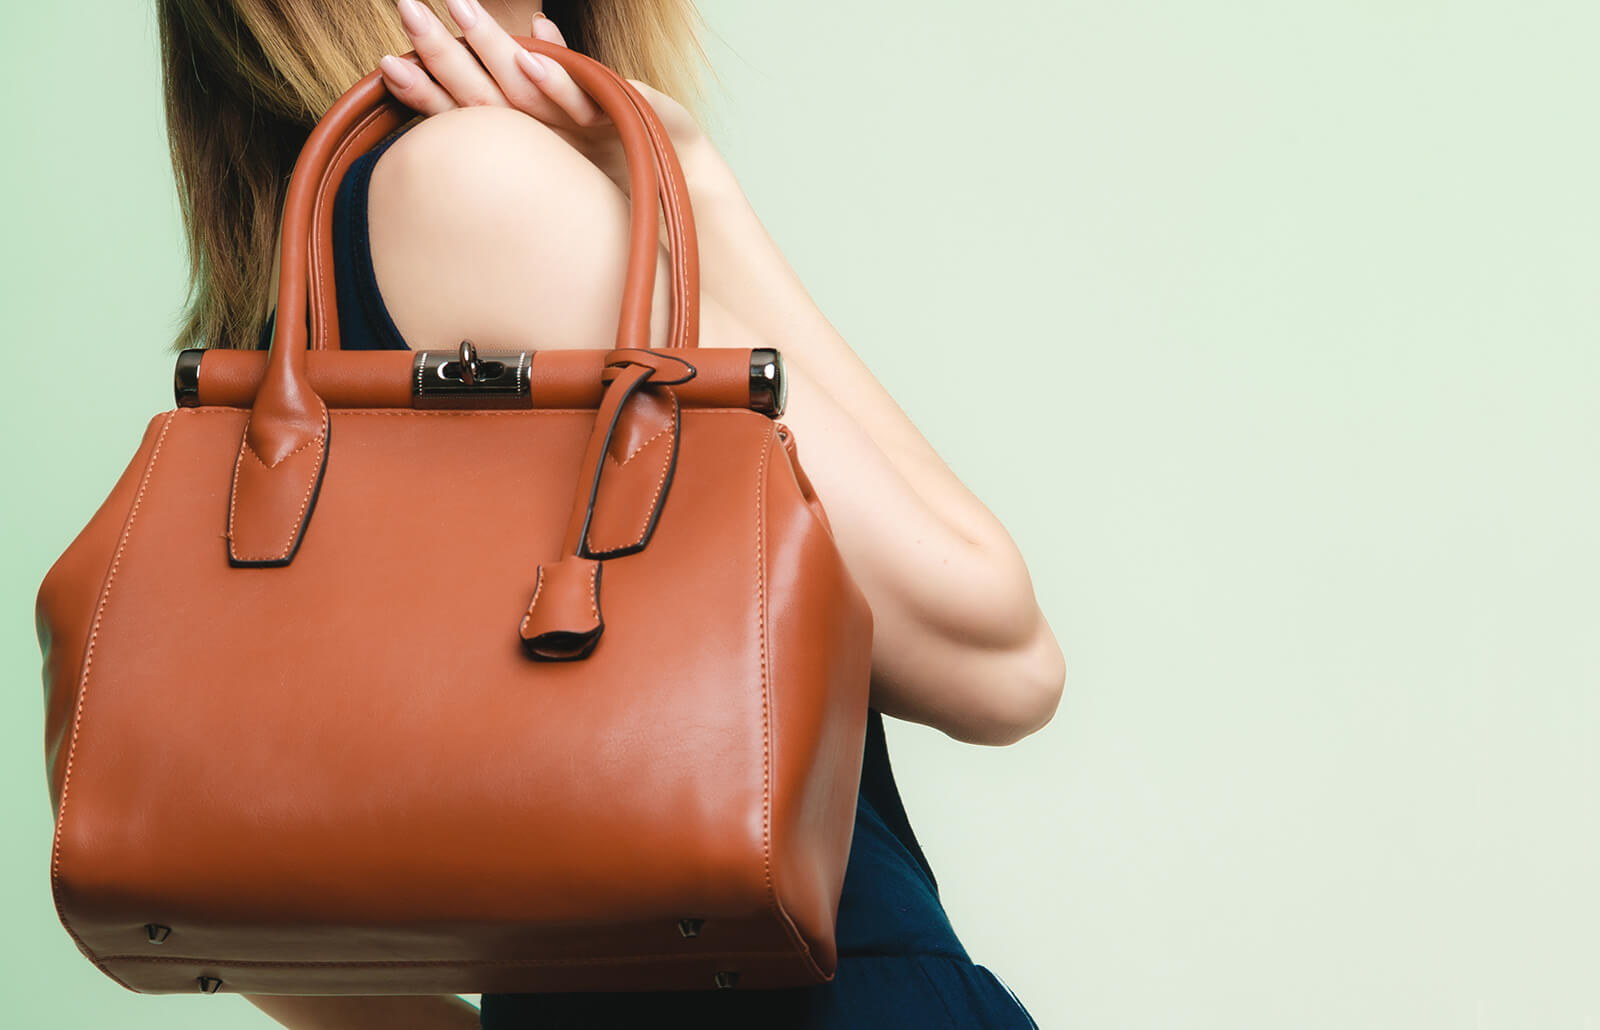 Top 15 Buttery Soft Leather Handbags | LoveToKnow